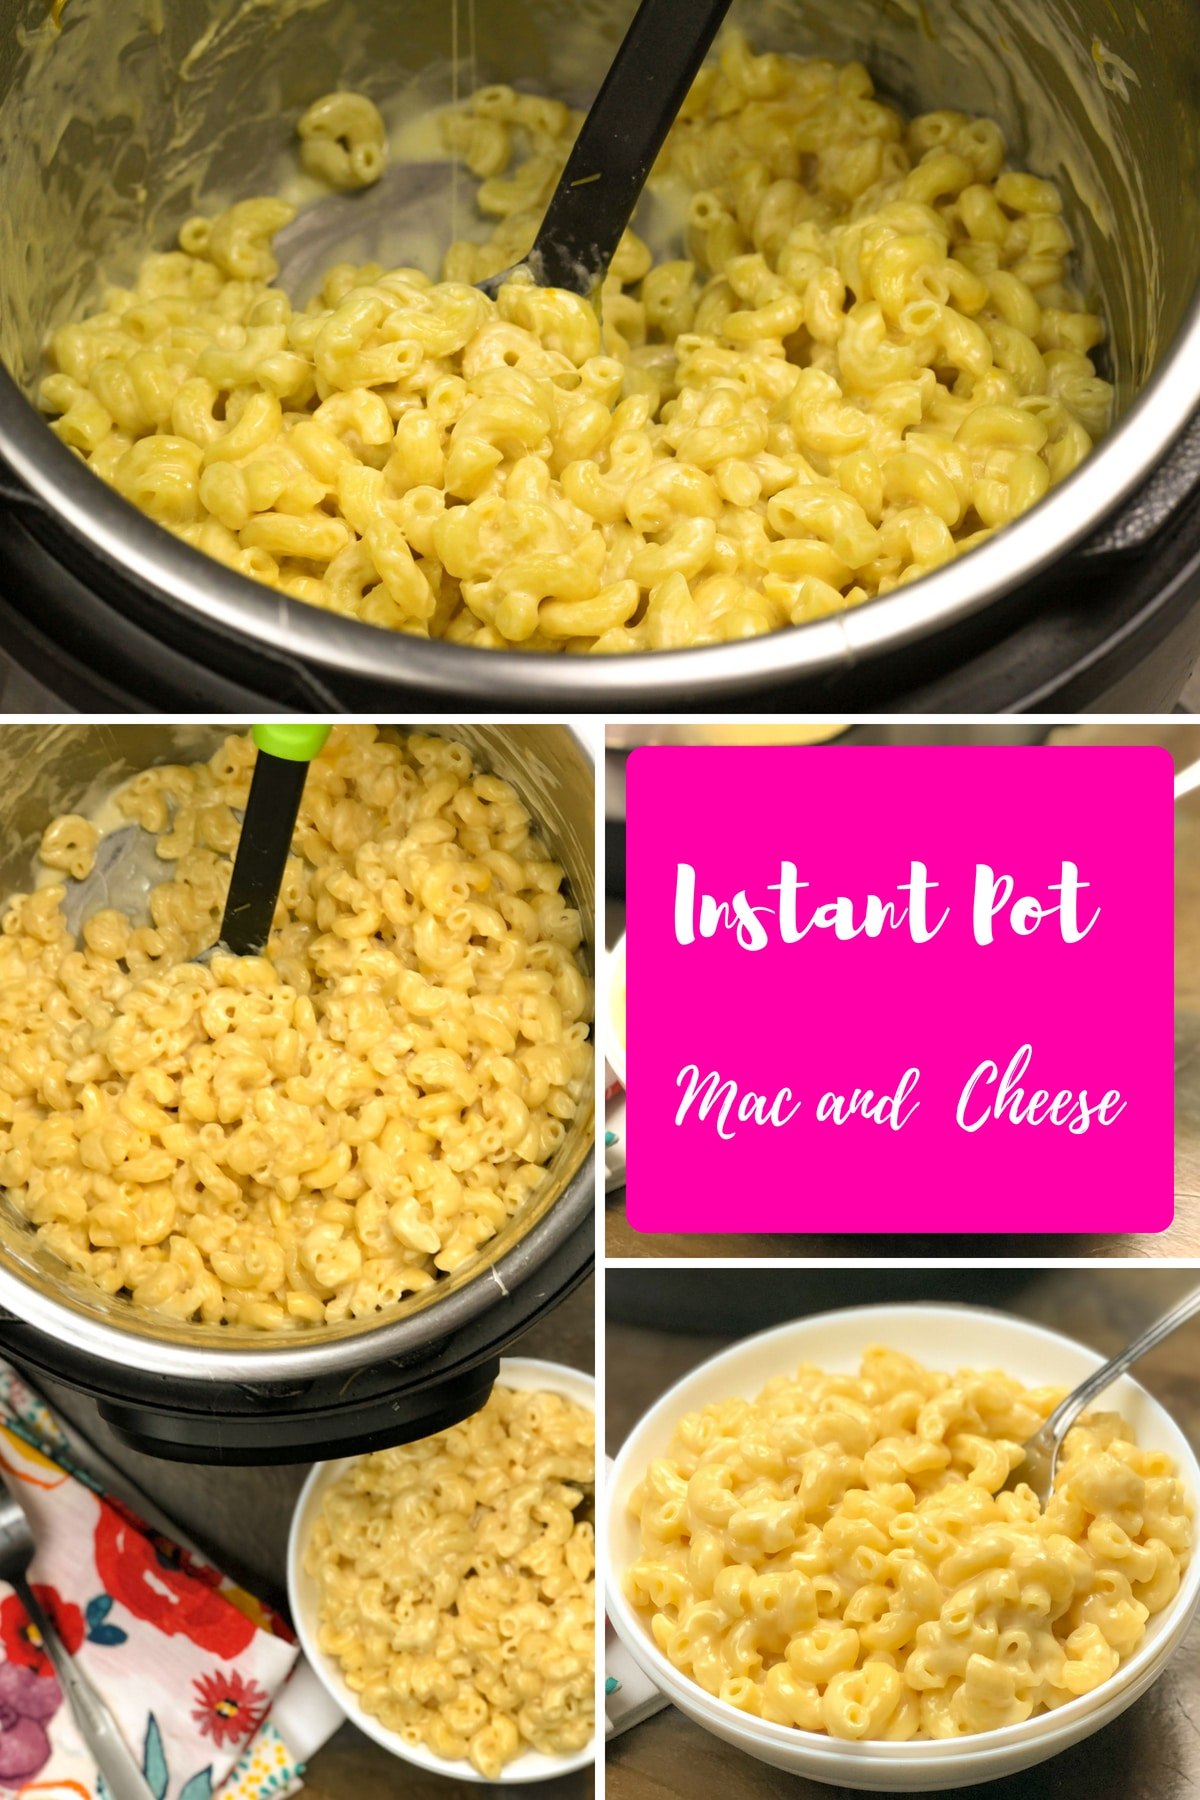 Cheesy, tender pasta, cooked to perfection every single time, no sticking, no mush just perfect al dente pasta each time. #easy #best #pressurecookerrecipes #kids #comfortfoods #instantpot #macandcheese #macaroniandcheese